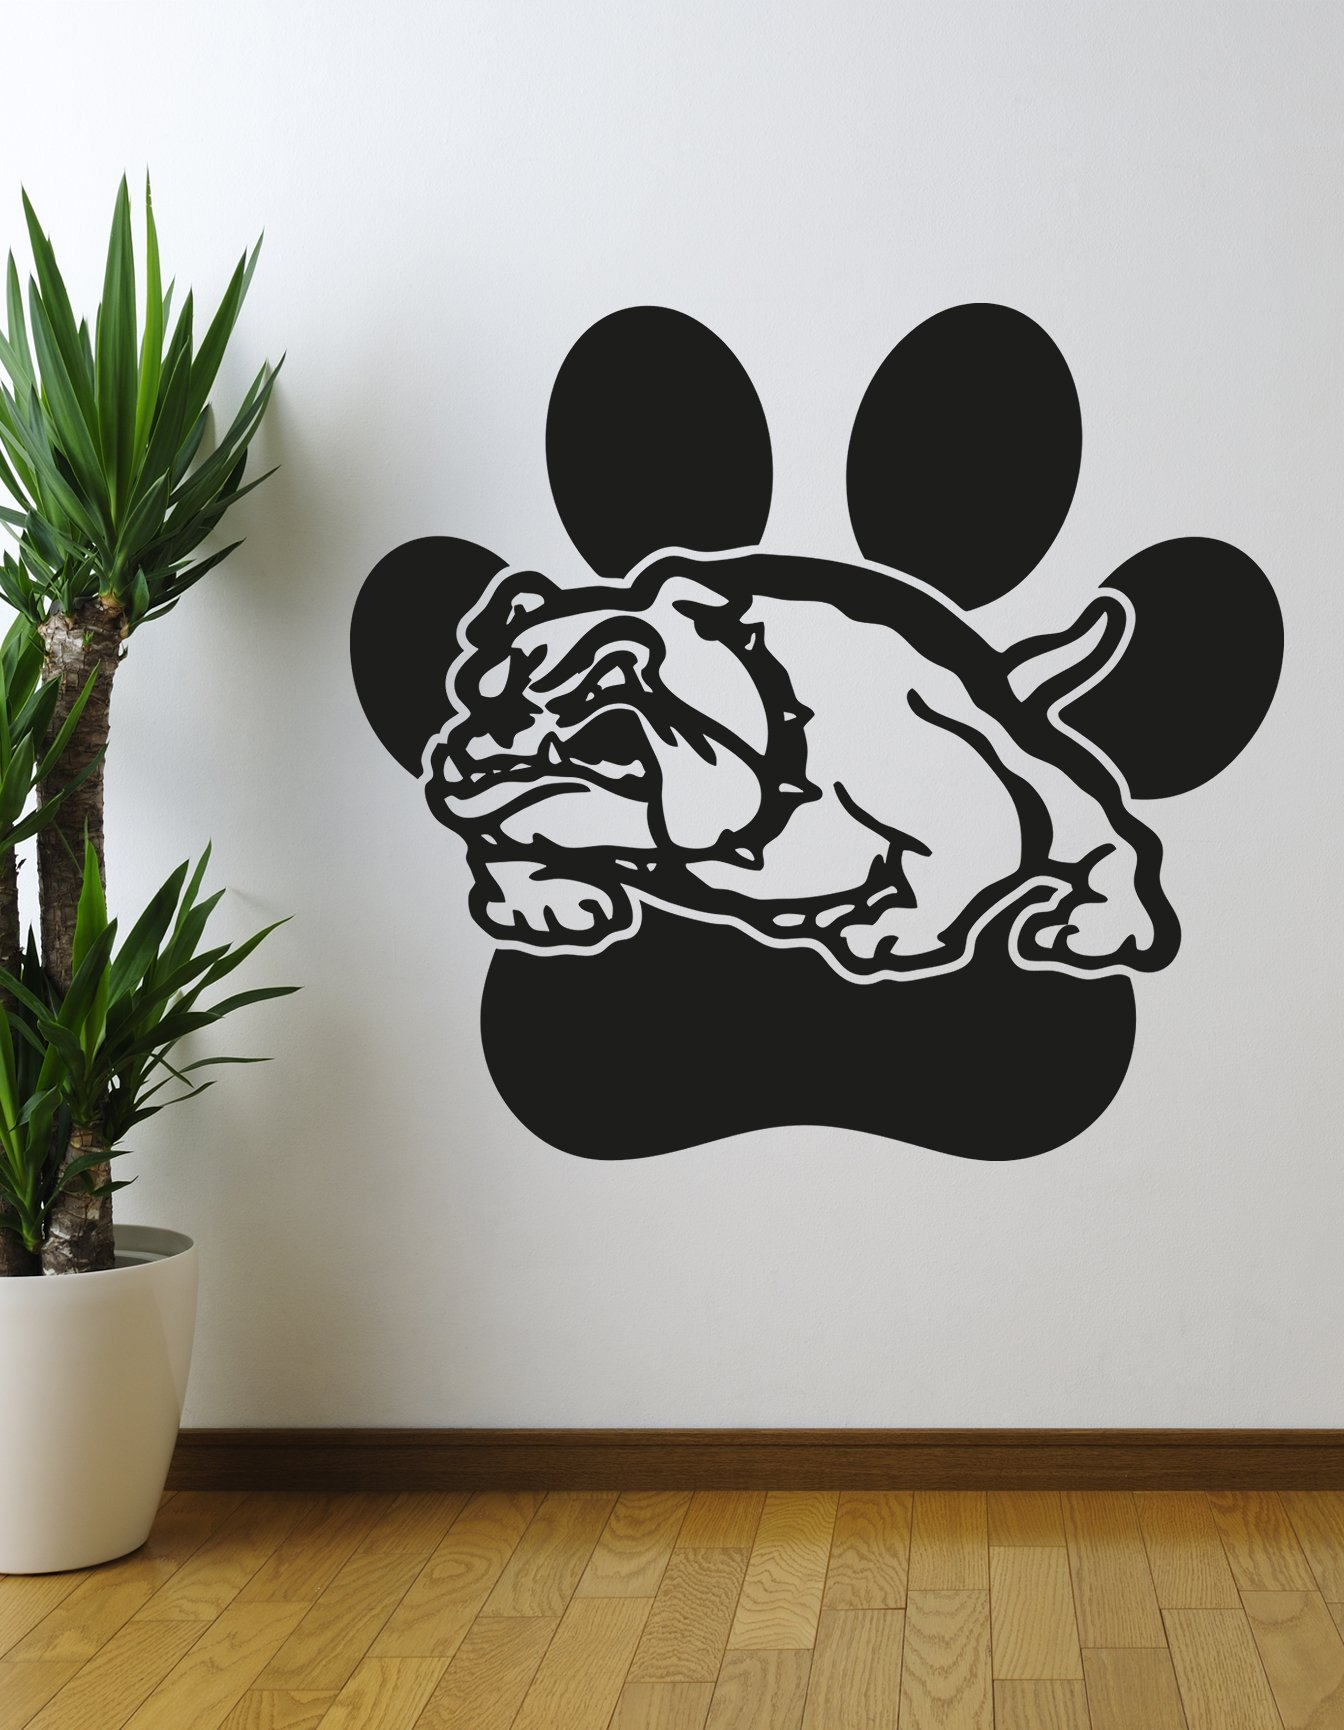 Stickerbrand School Mascot Bulldog w/Paw Print Wall Decal Sticker Large 36in x 39in. #OS_AA619s. Easy to Apply & Removable. You Pick The Color.